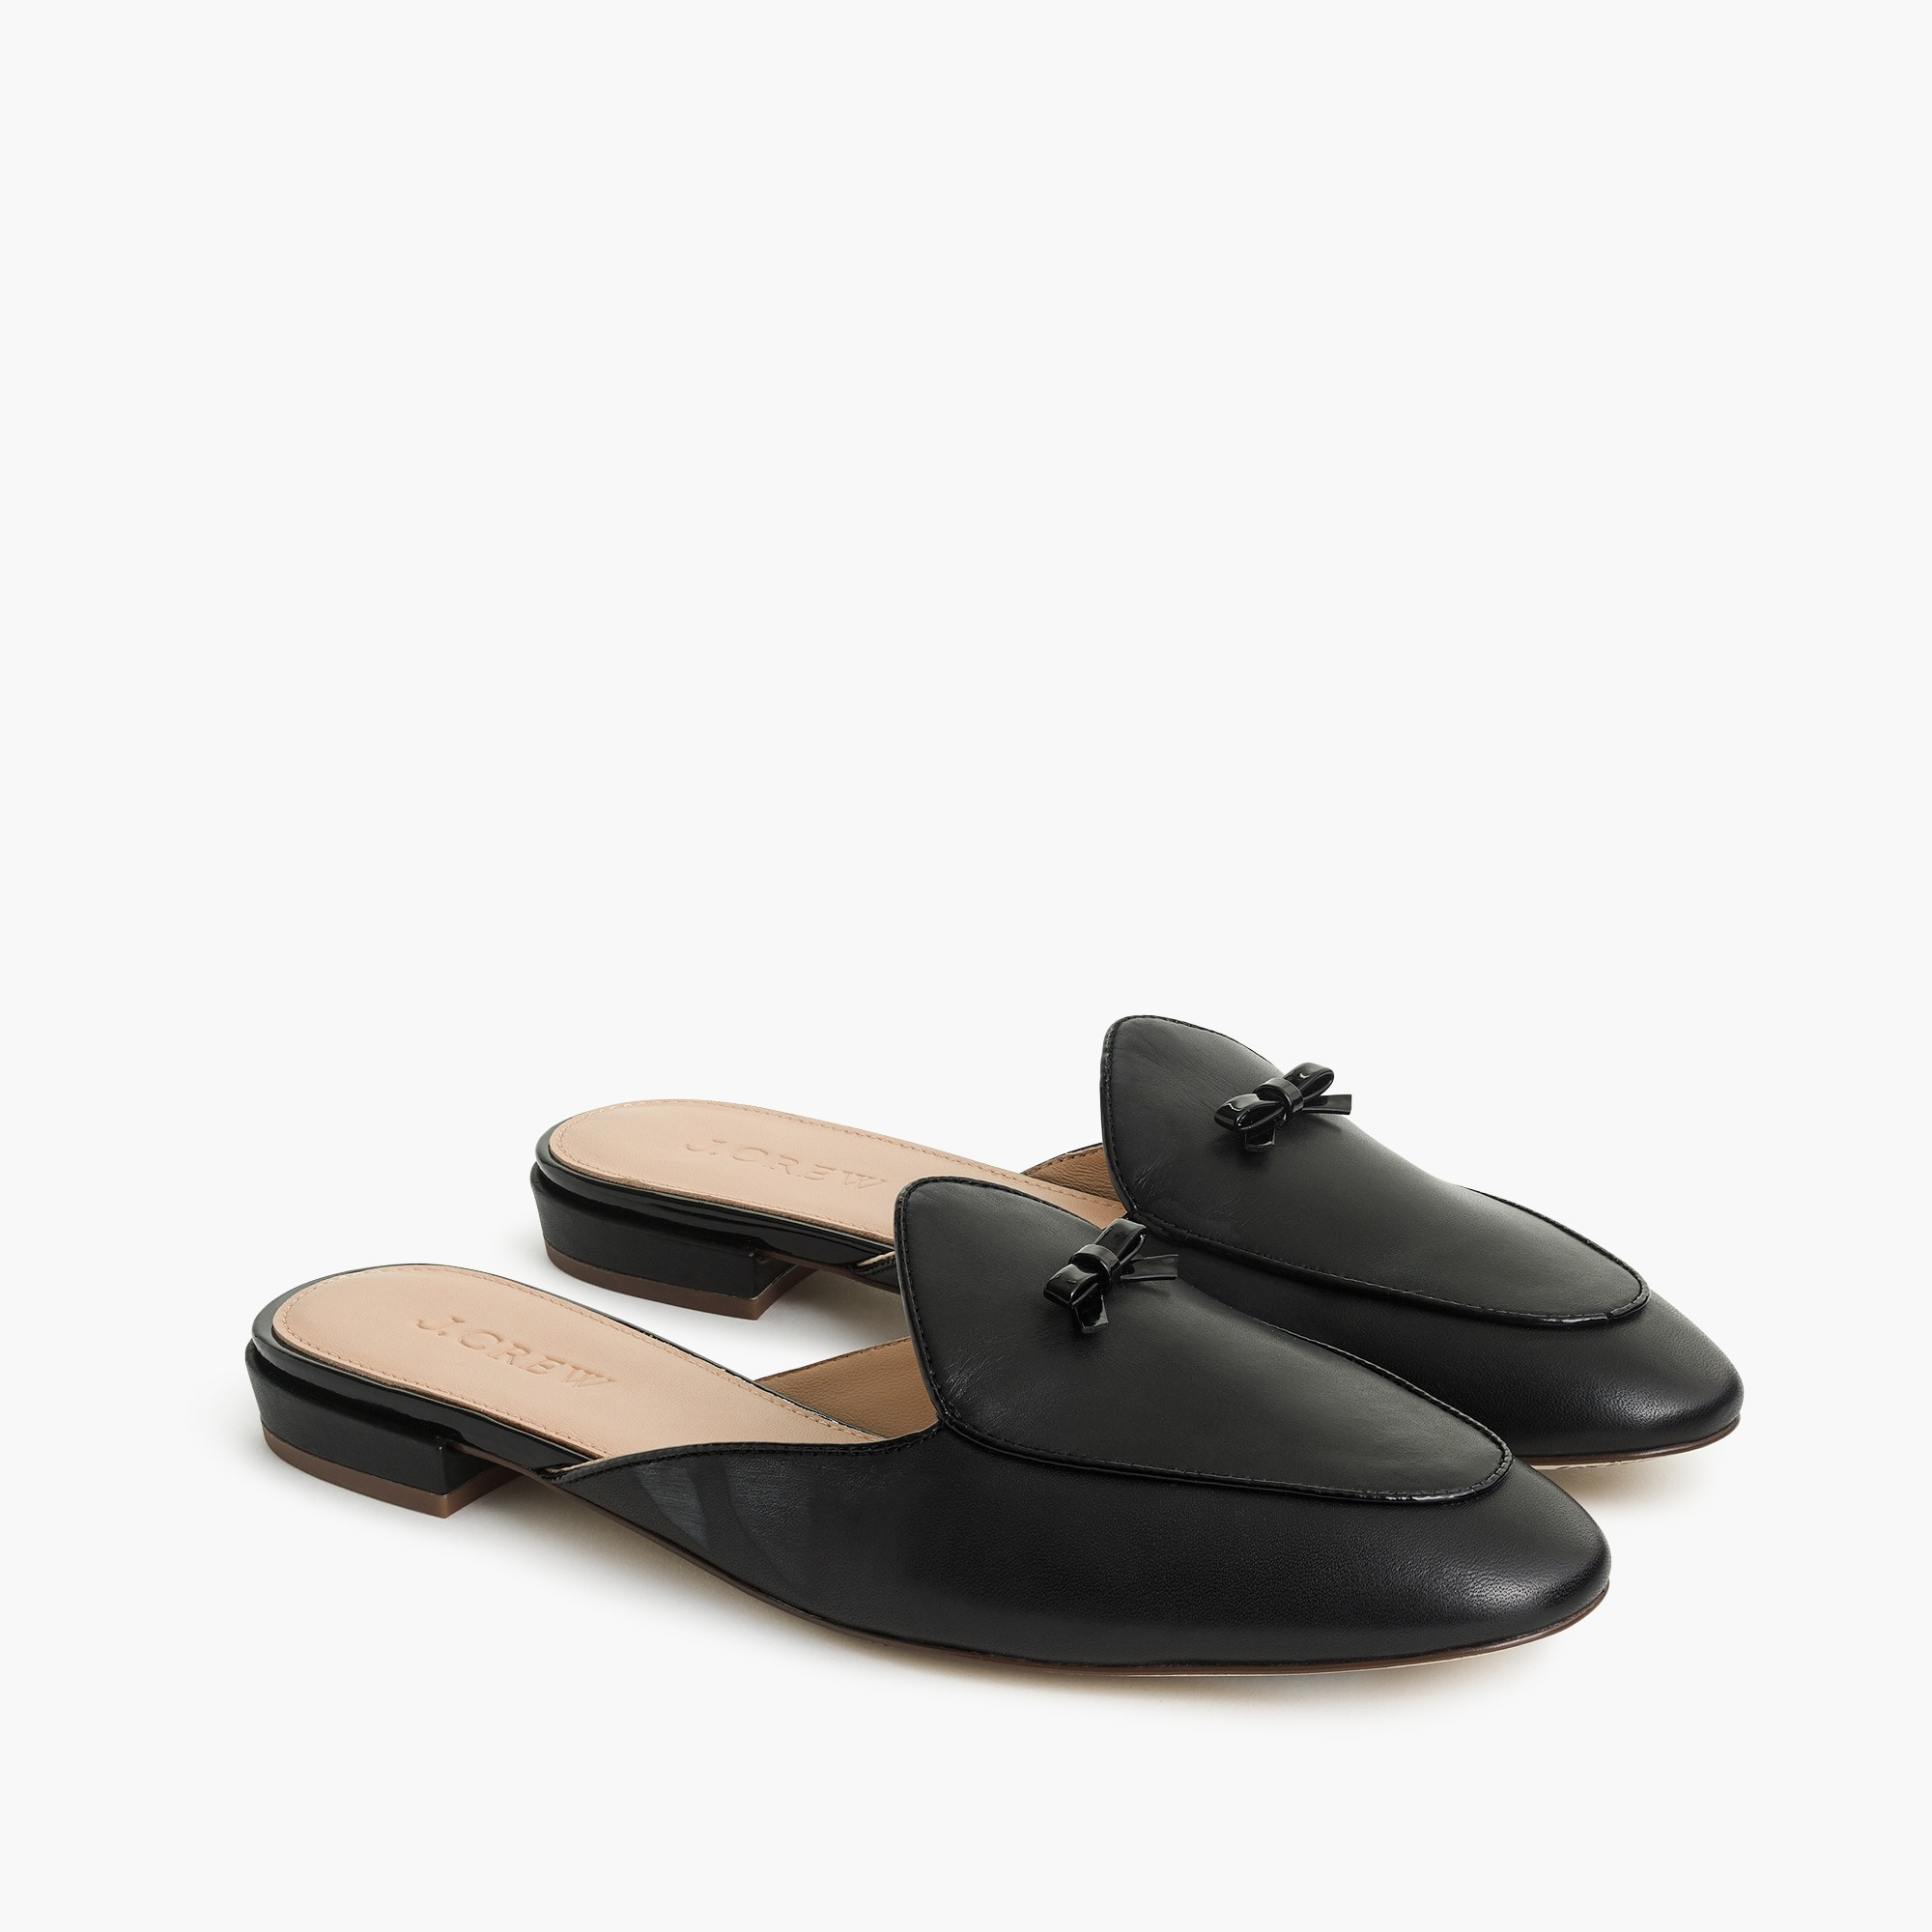 Piped loafer mules in leather women shoes c